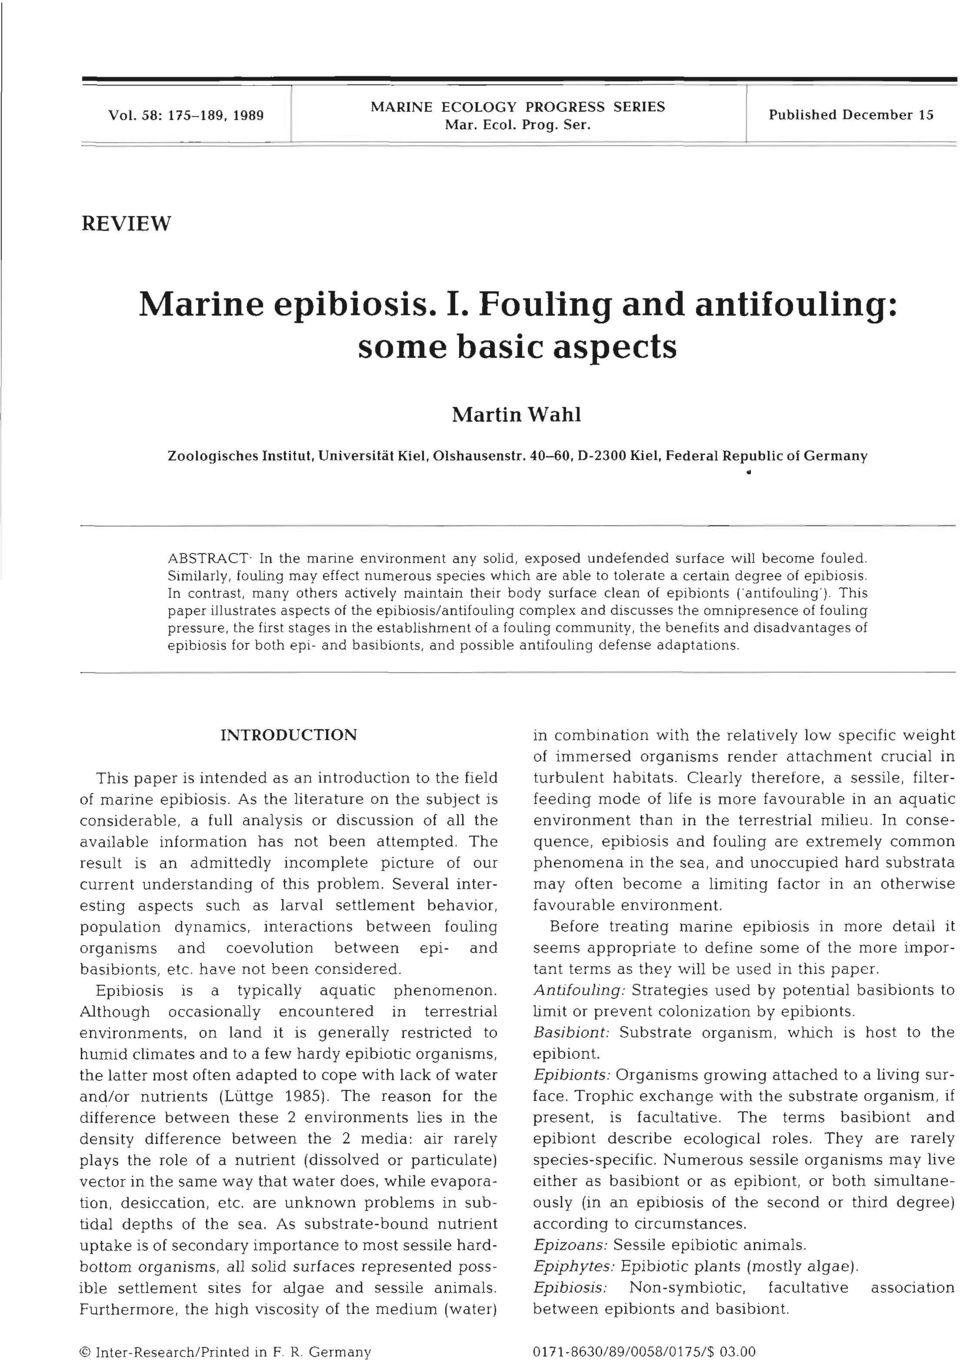 In the marine environment any solid, exposed undefended surface will become fouled. Similarly, fouling may effect numerous species which are able to tolerate a certain degree of epibiosis.